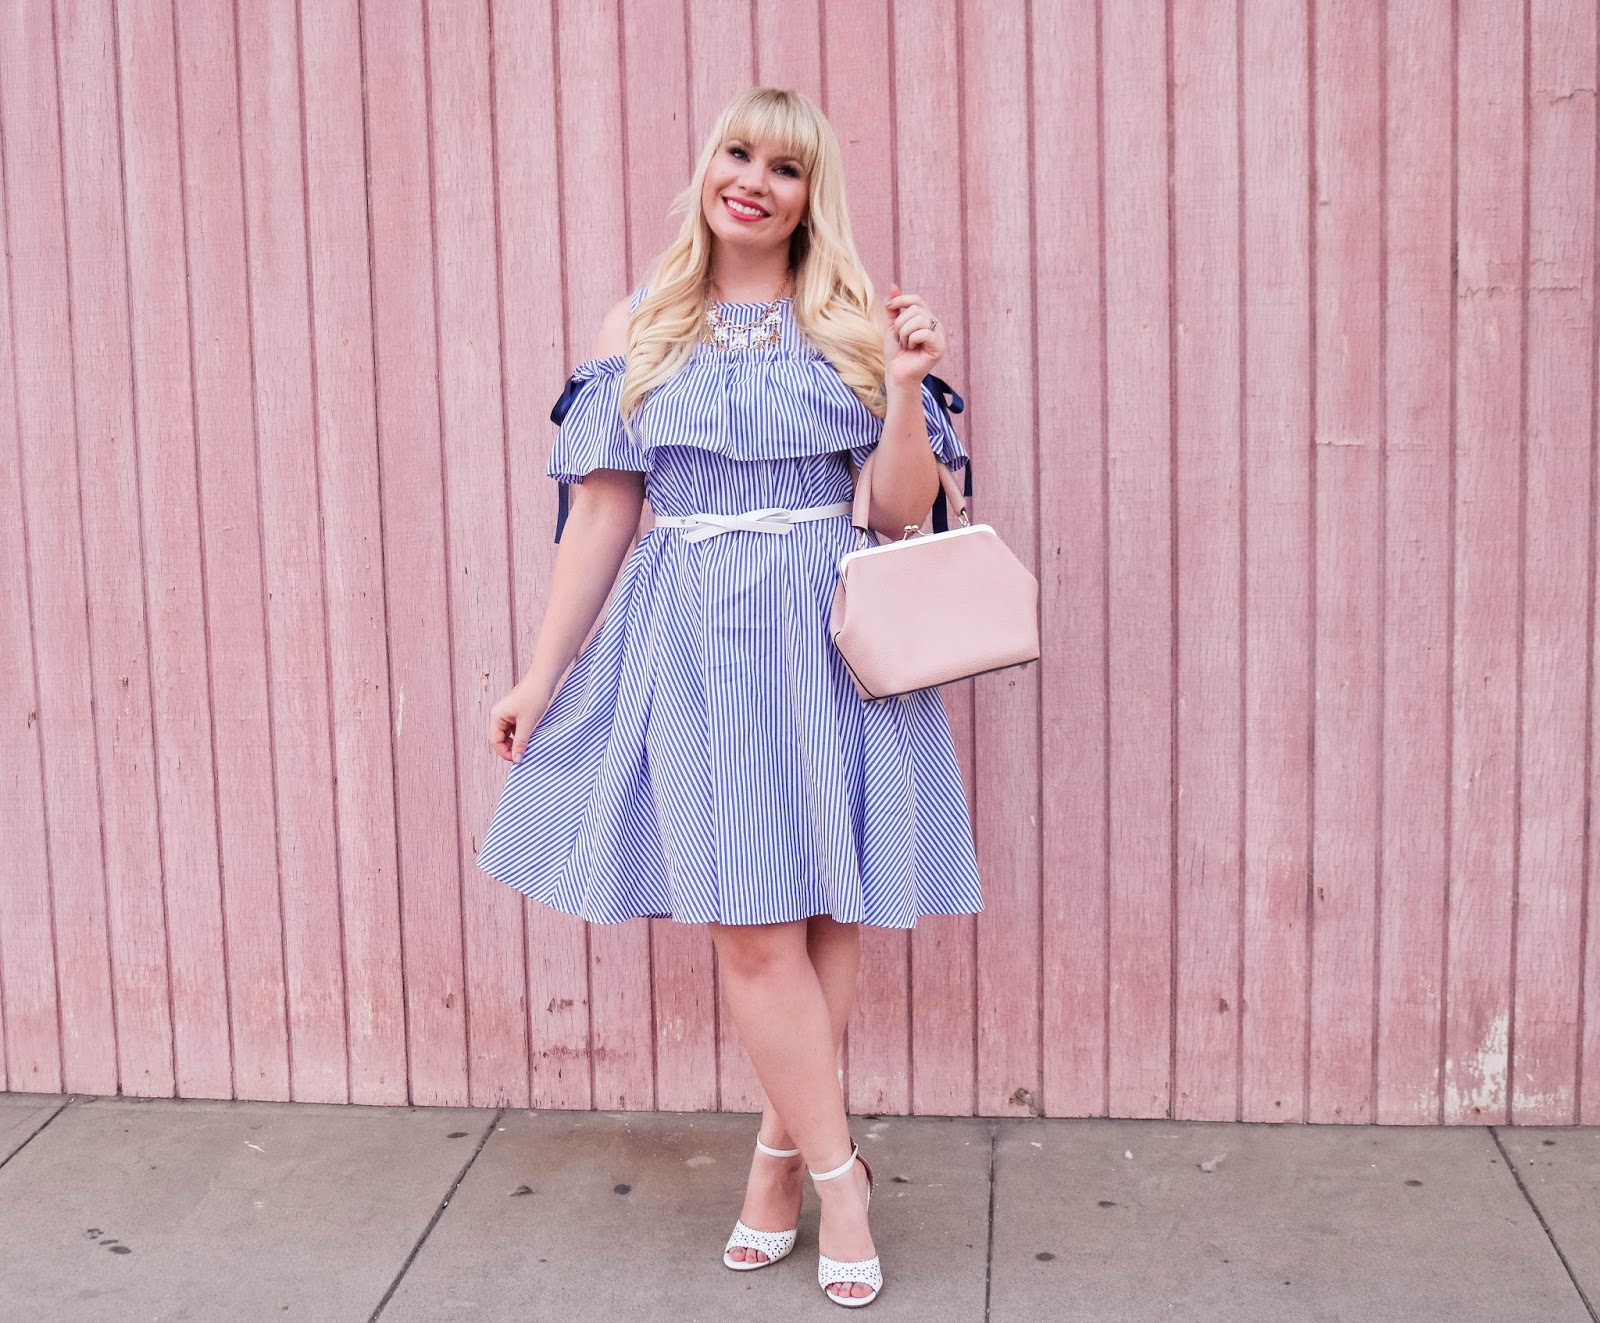 Ruffles, Bows and Stripes – The Cutest Blue Striped Dress